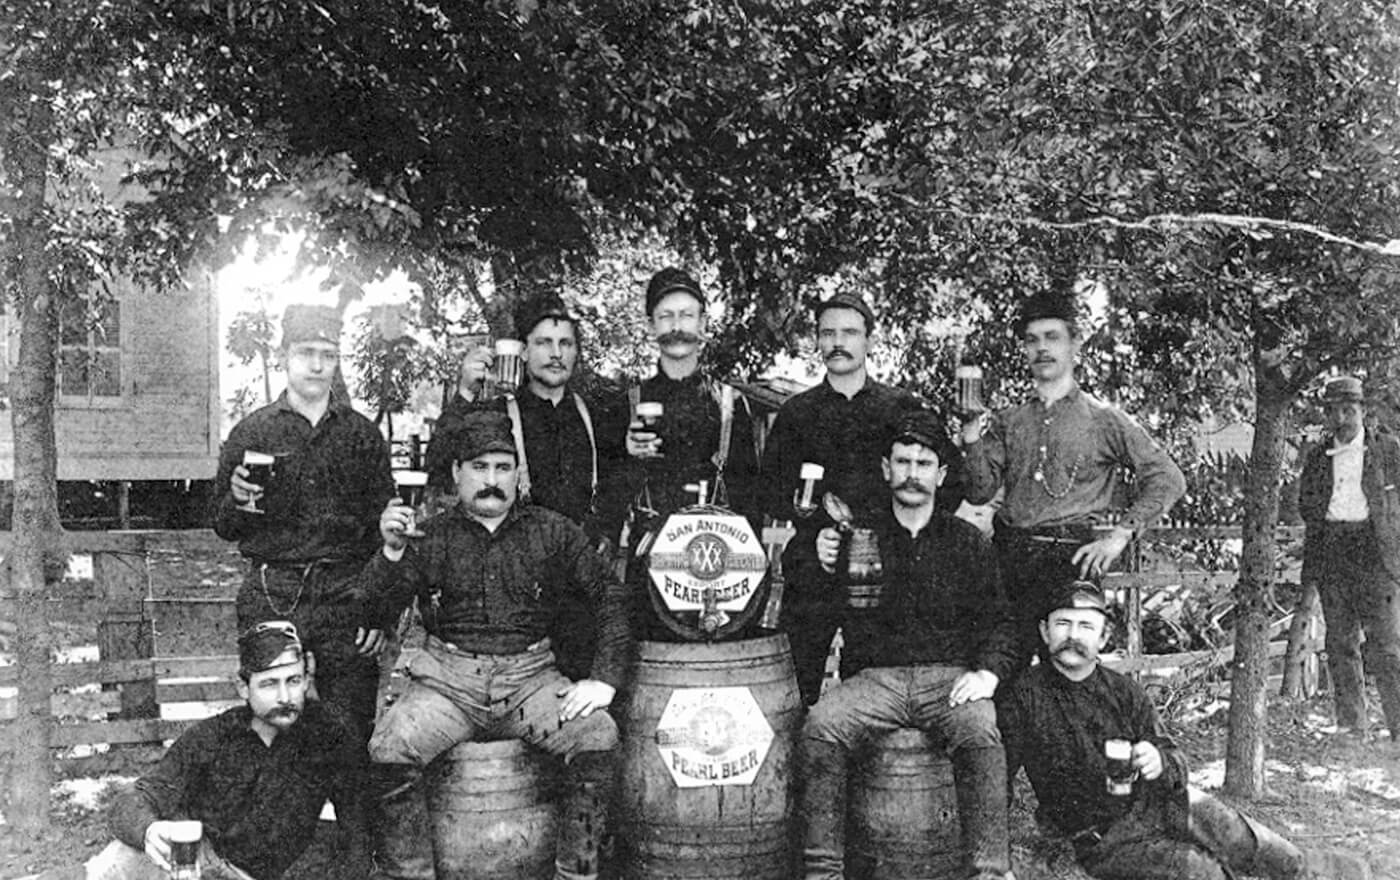 A picture of the group men drinking beer with fin de Siecle mustaches.